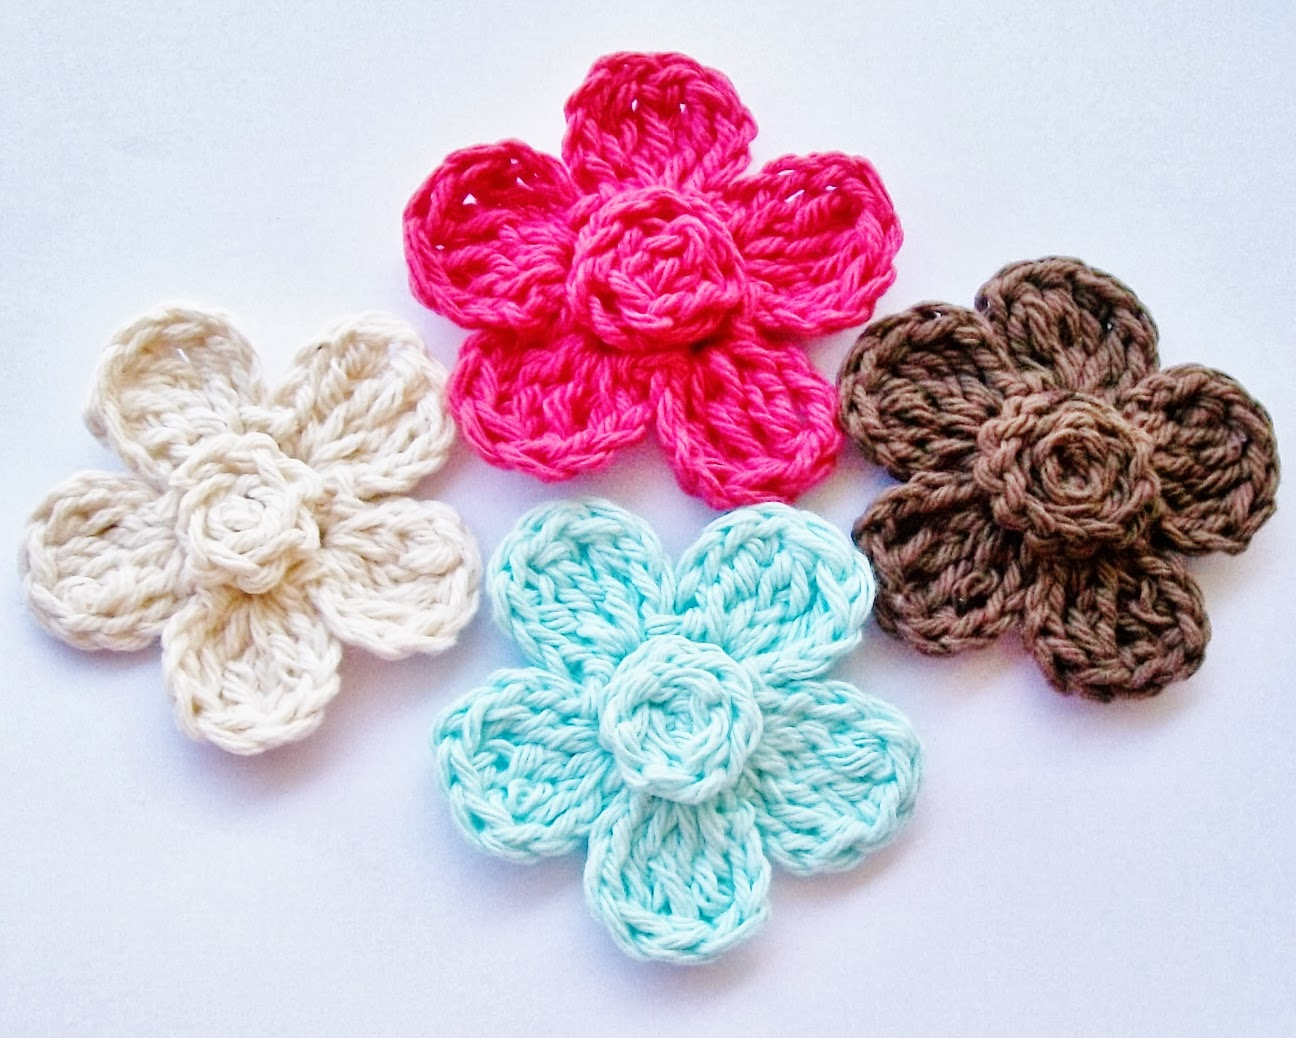 Crochet Pattern For A Flower Headband : Flower Girl Cottage : Free Crochet Flower Pattern